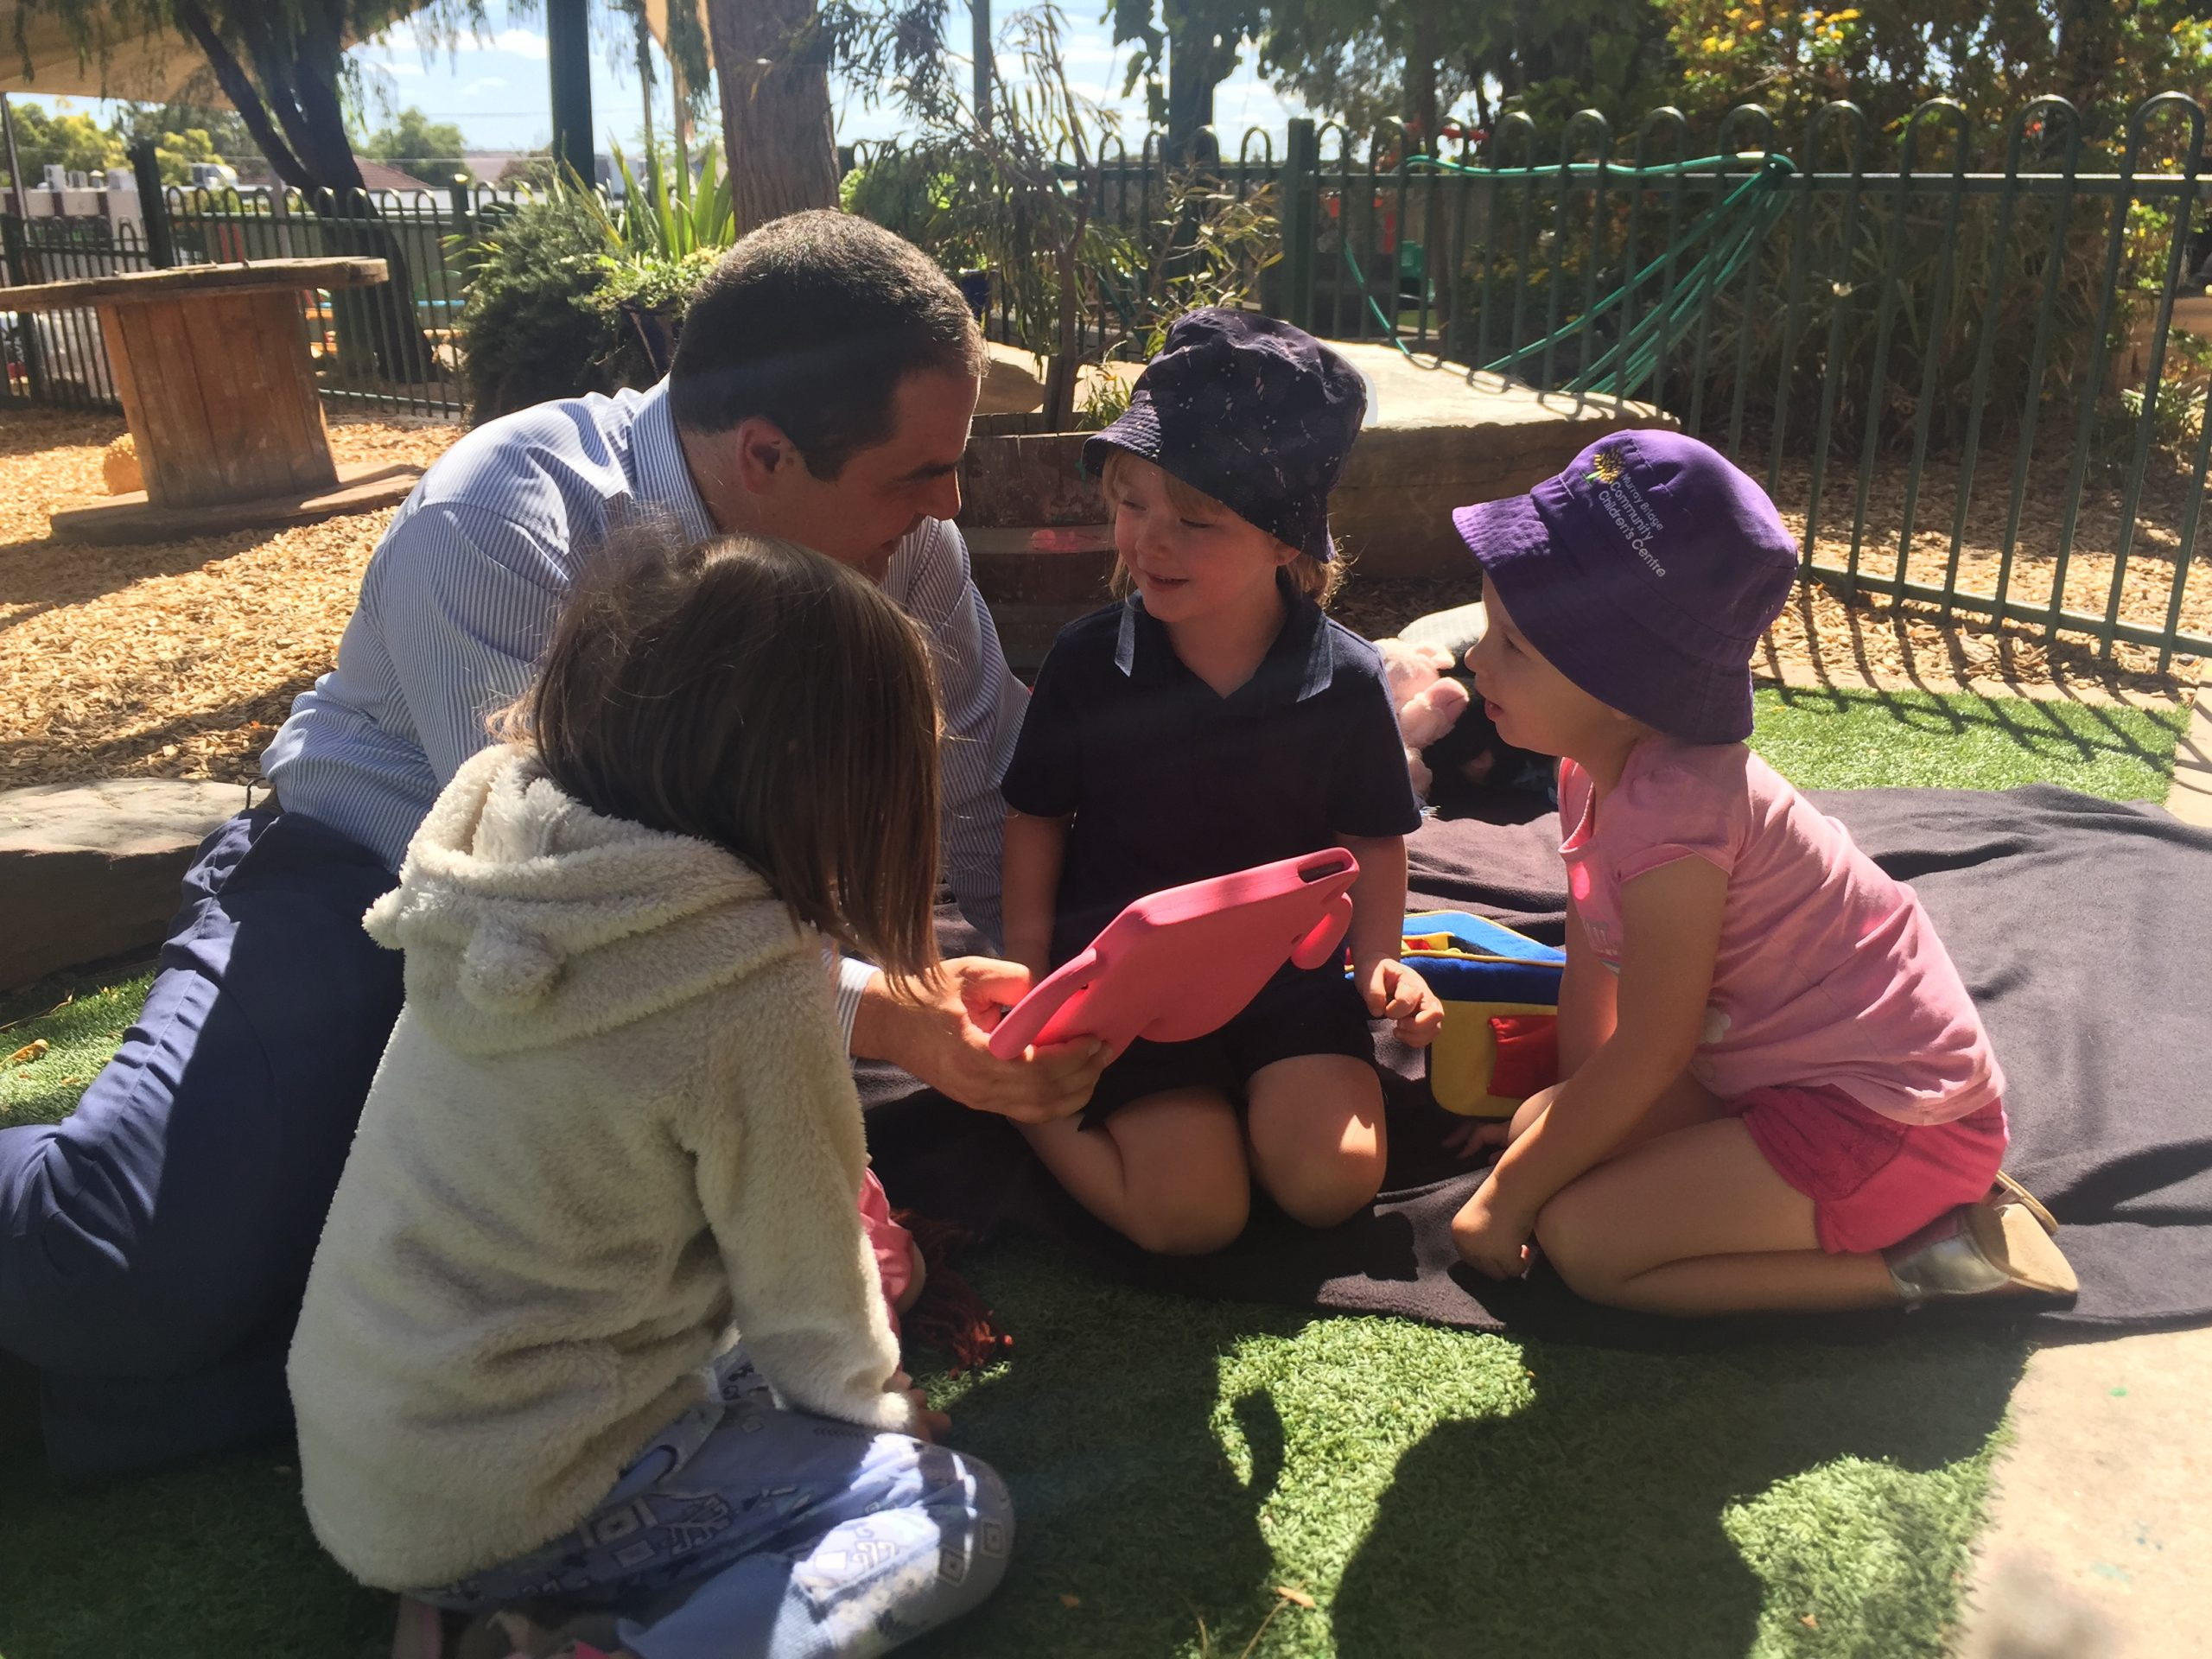 FUNDING AGREEMENT TO BOOST PRESCHOOL ATTENDANCE IN SOUTH AUSTRALIA